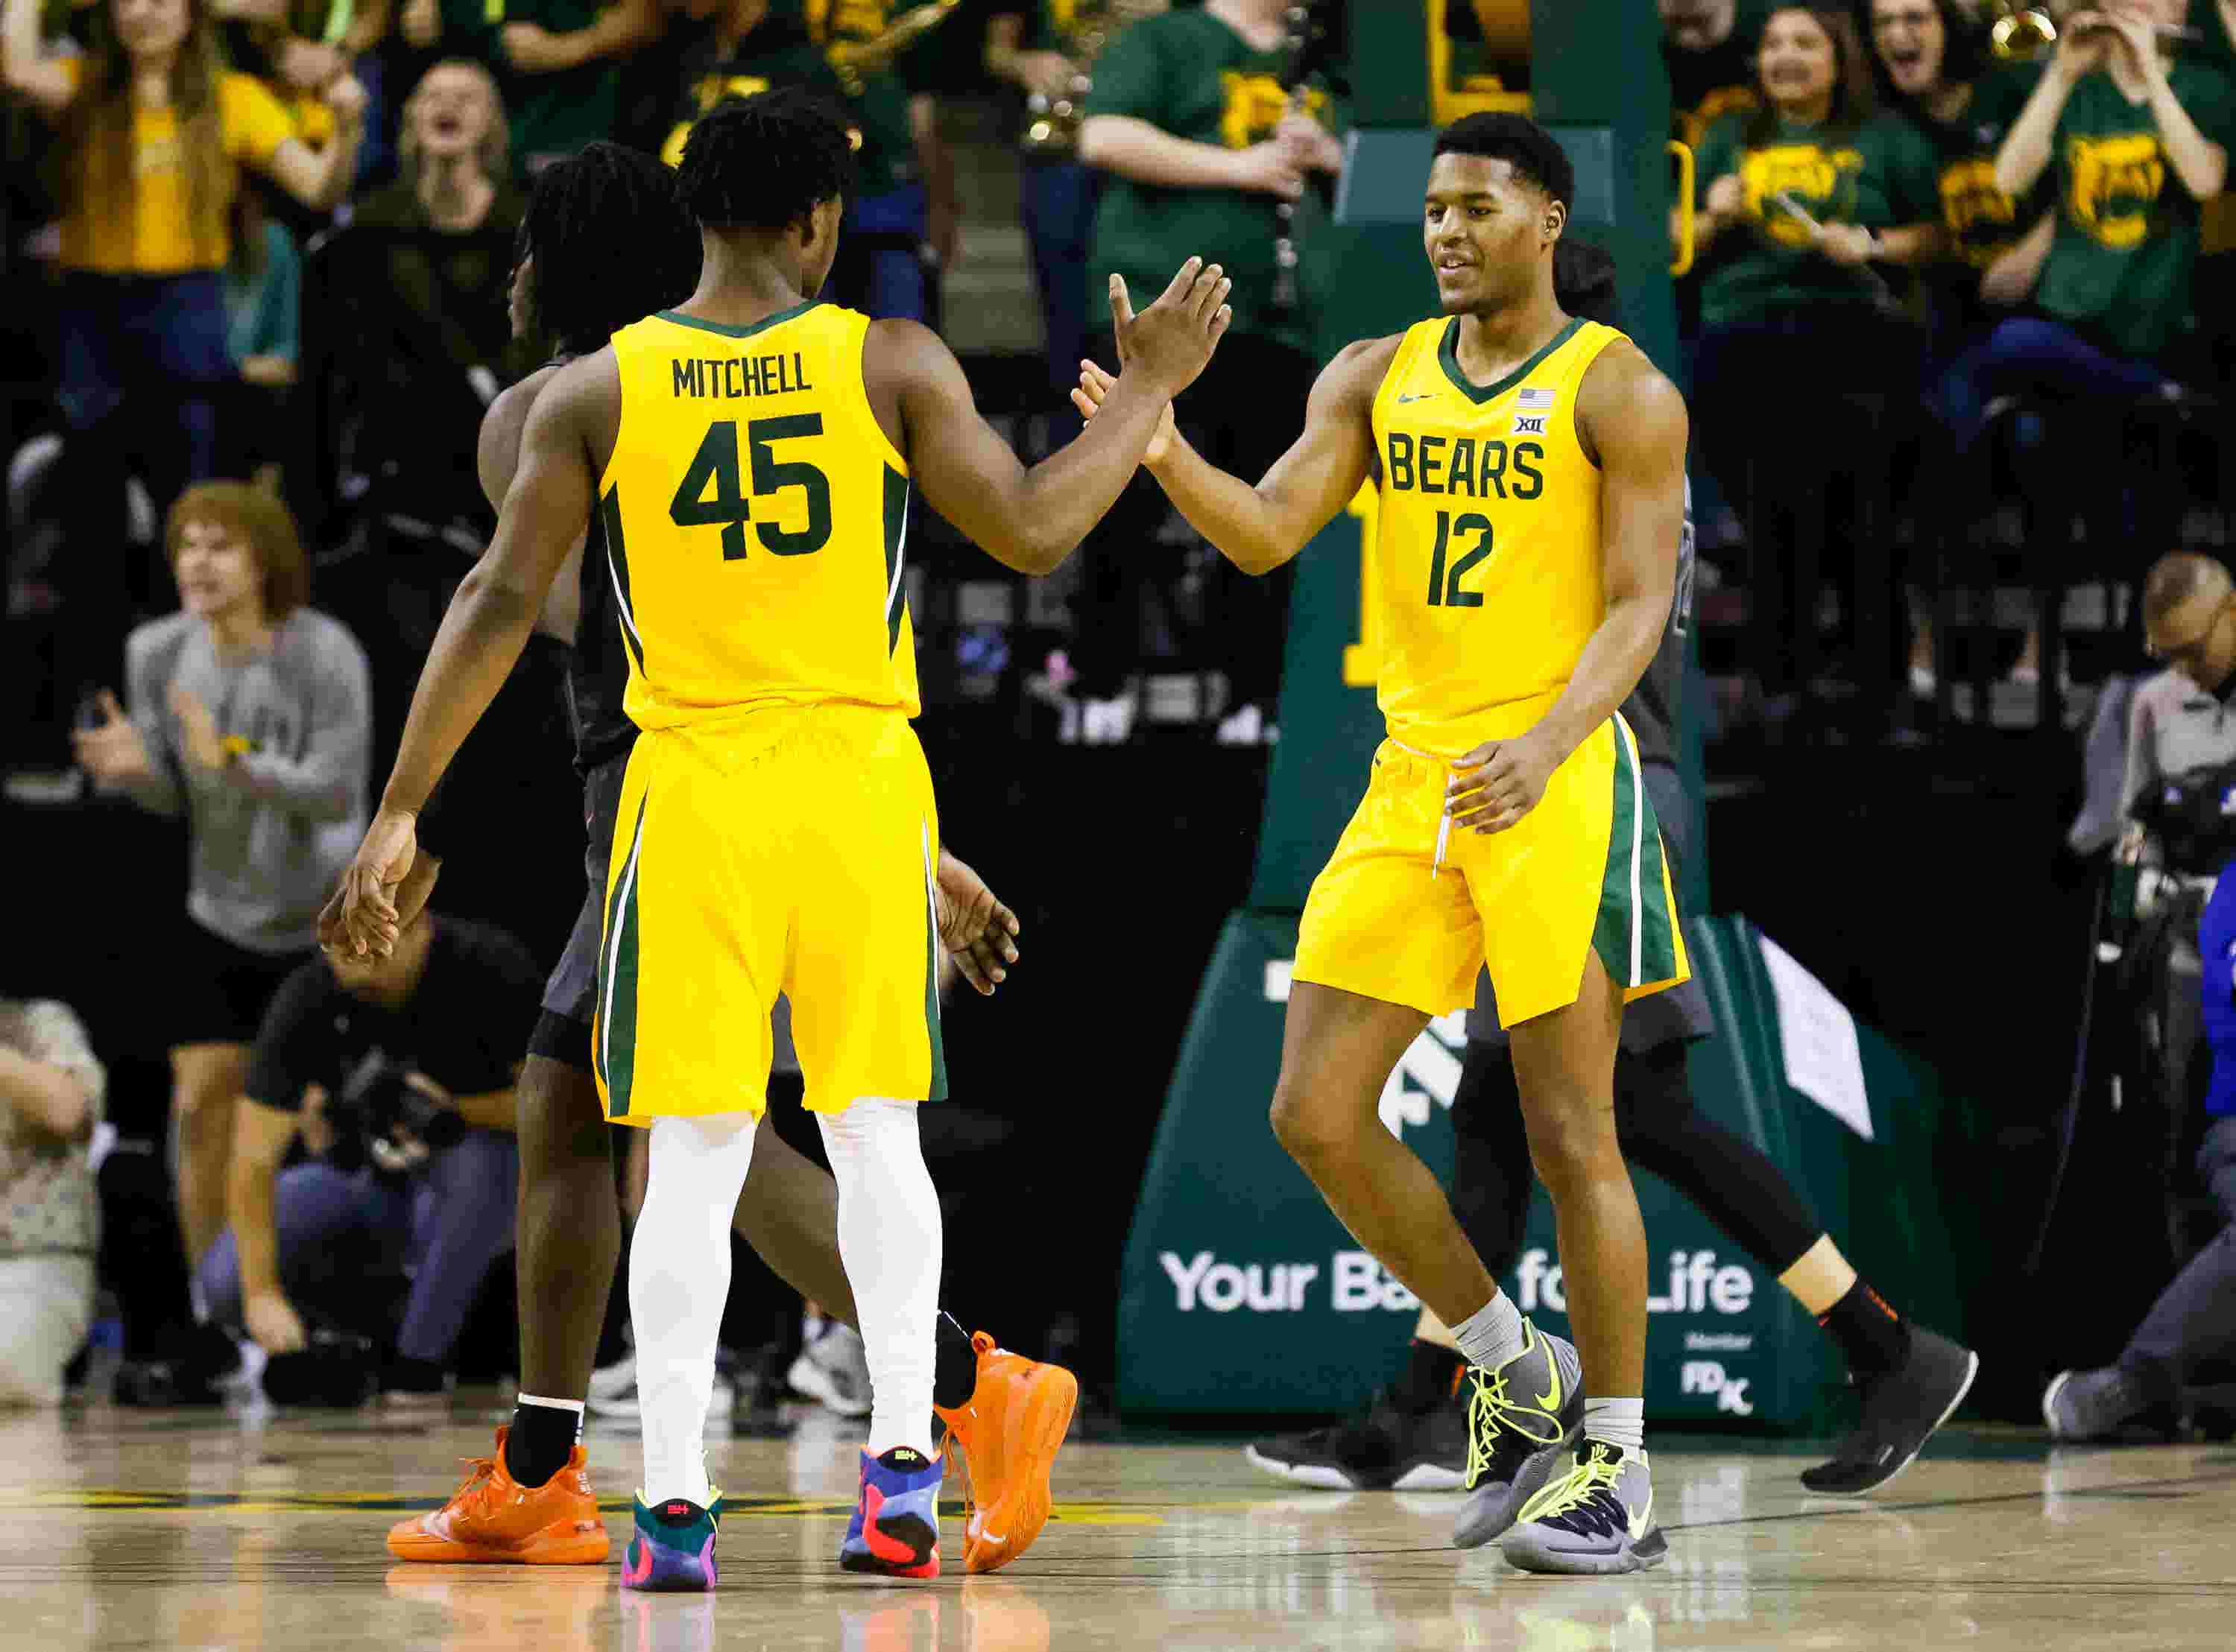 Baylor continues hold on No. 1 spot in USA TODAY Sports men's basketball poll